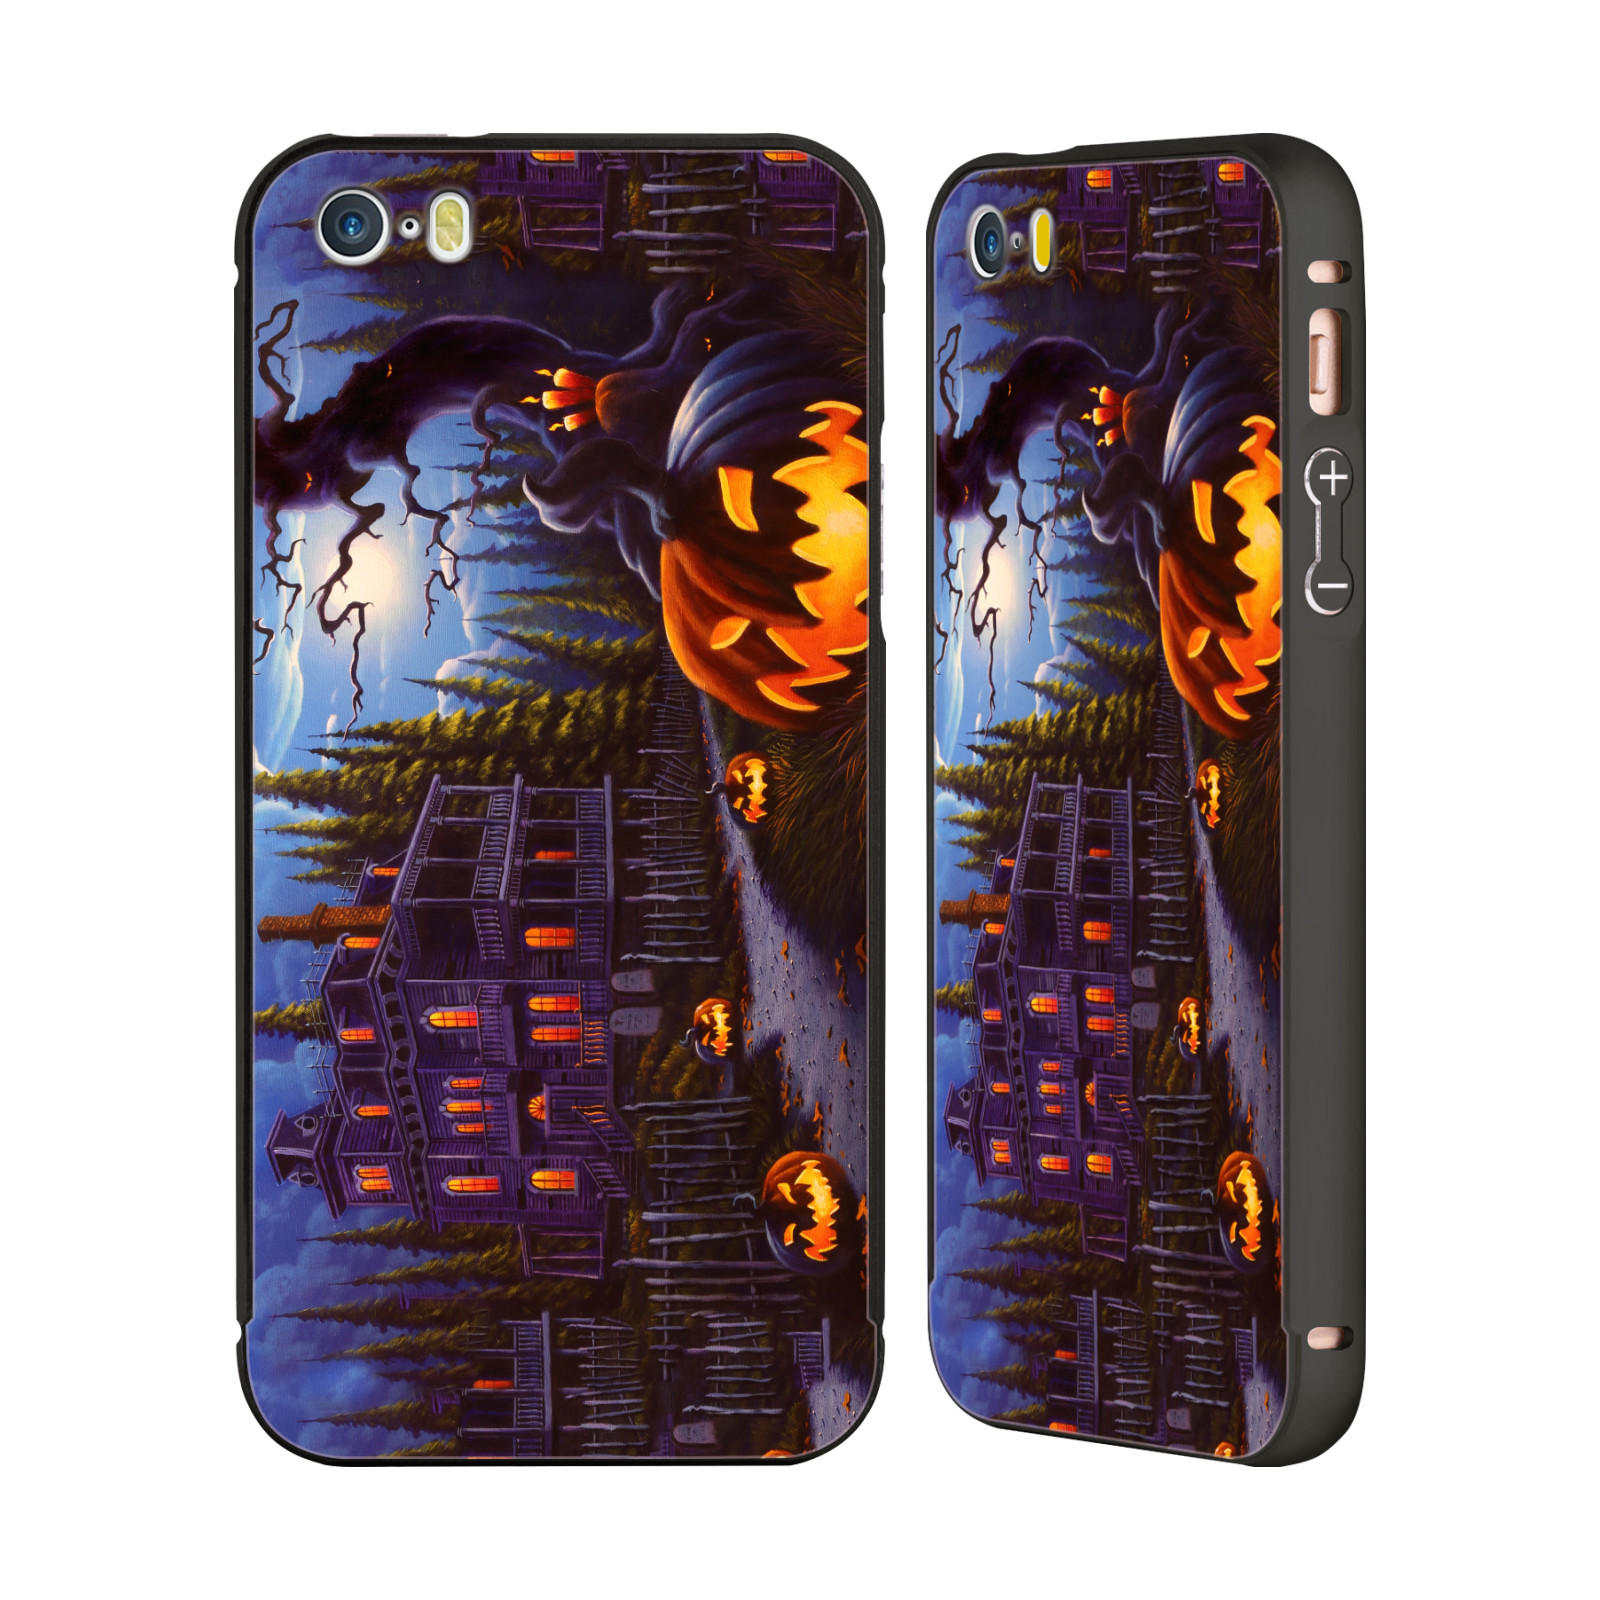 OFFICIAL-GENO-PEOPLES-ART-HALLOWEEN-BLACK-SLIDER-CASE-FOR-APPLE-iPHONE-PHONES